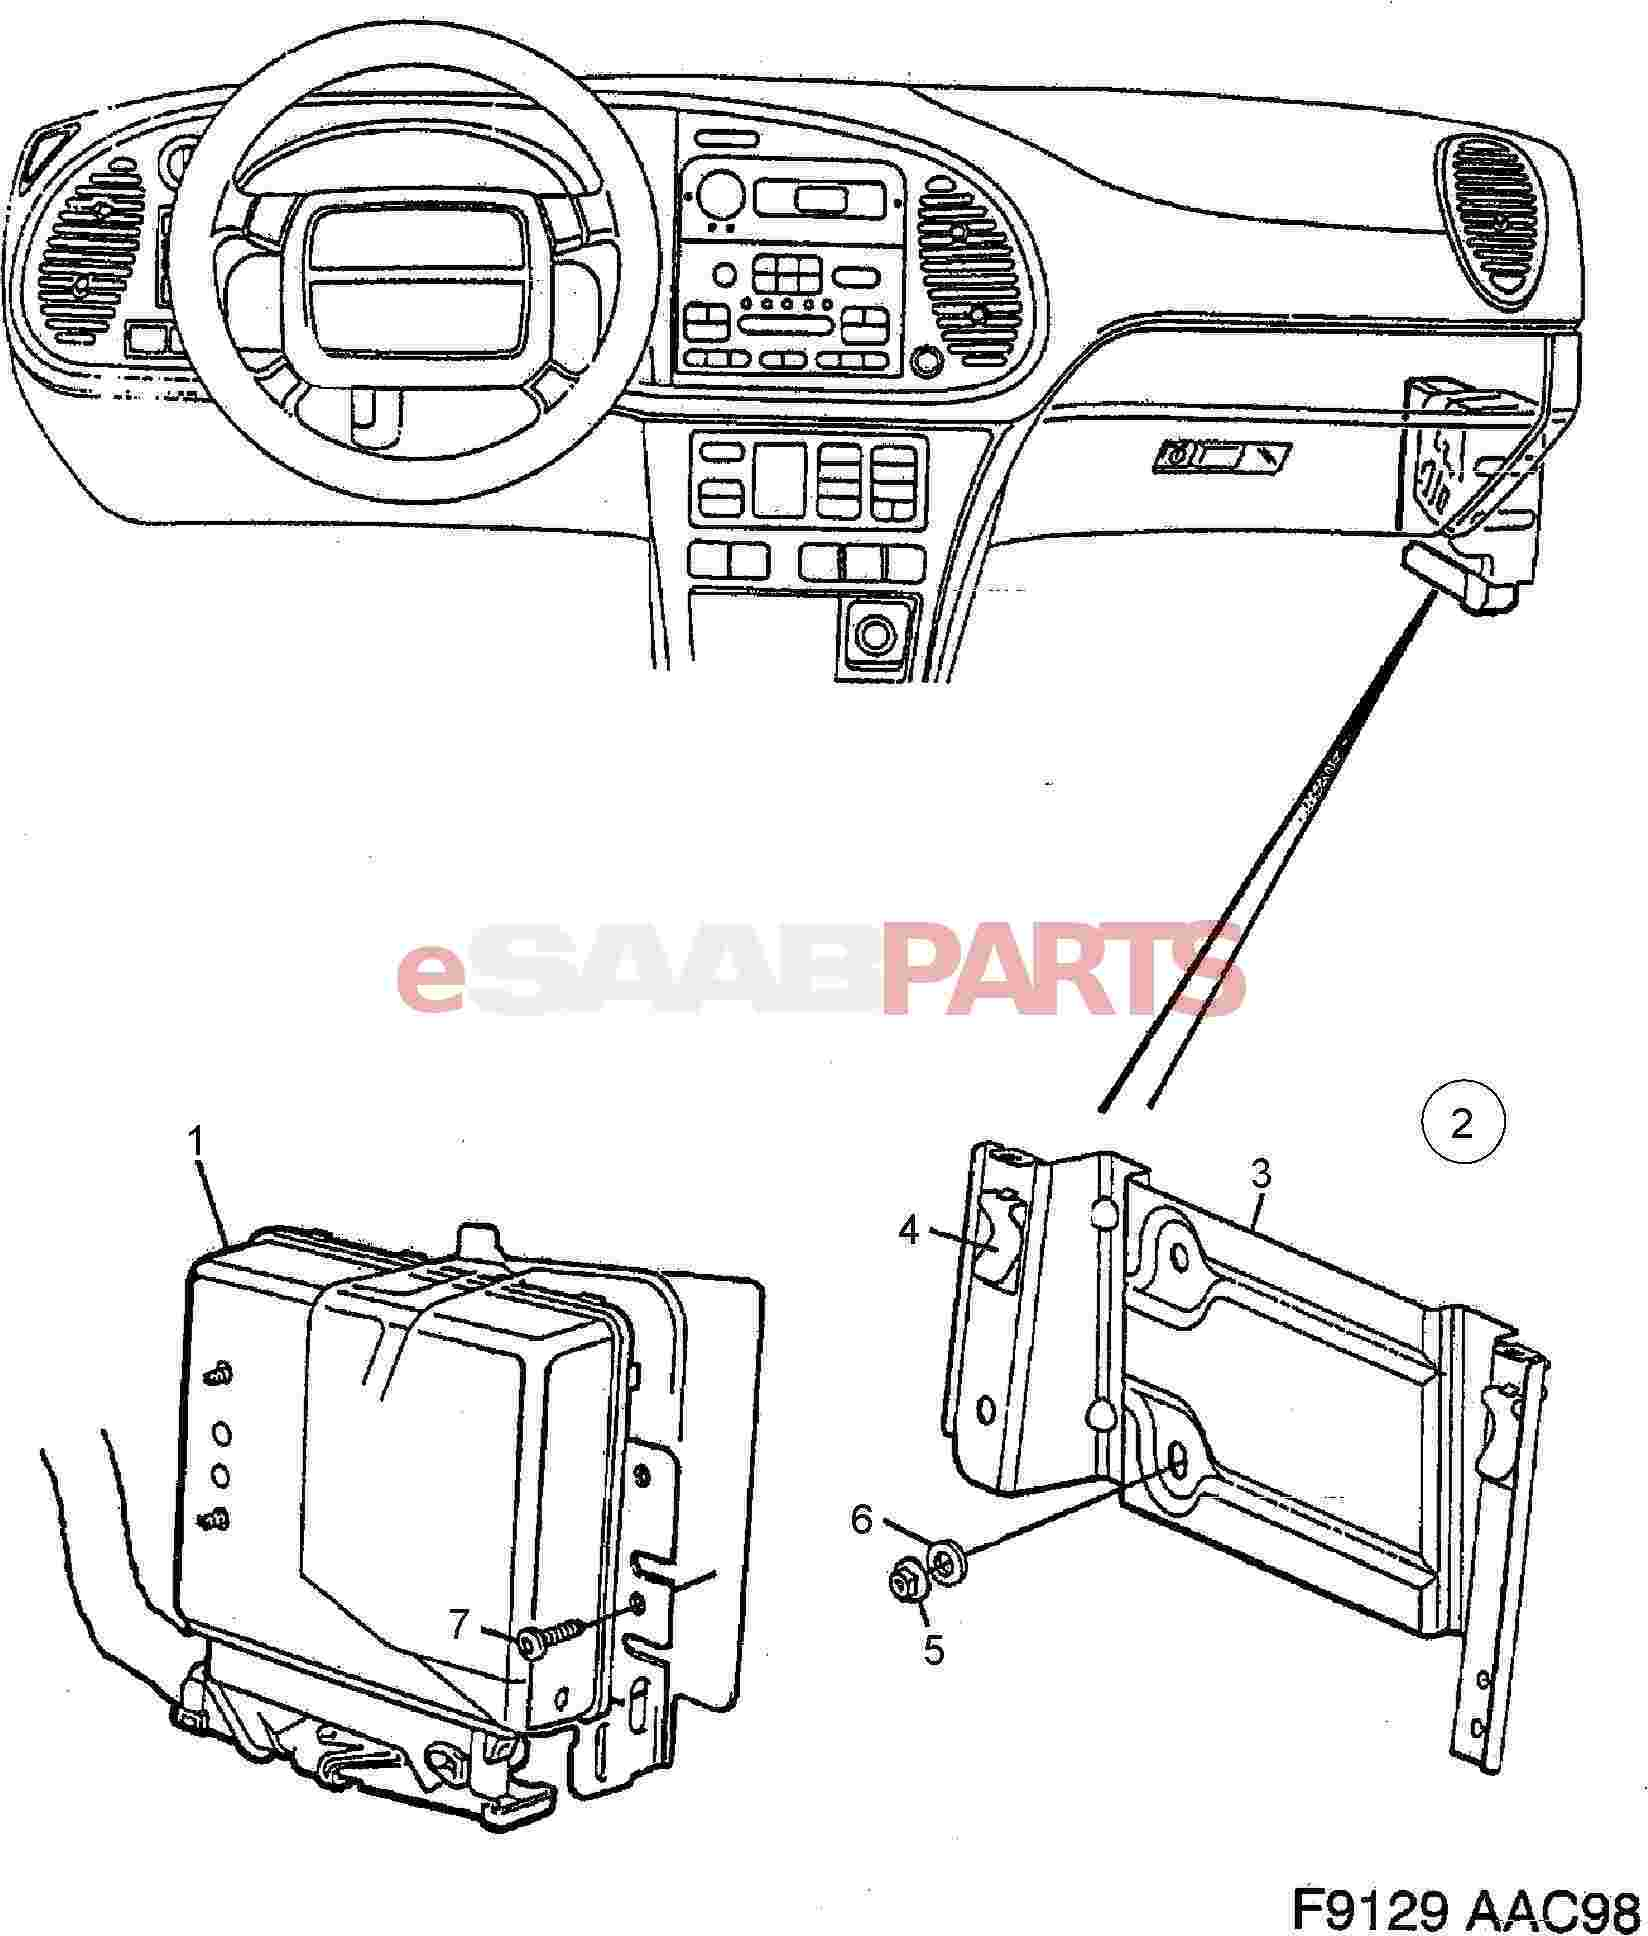 93 honda del sol fuse box diagram  honda  auto wiring diagram